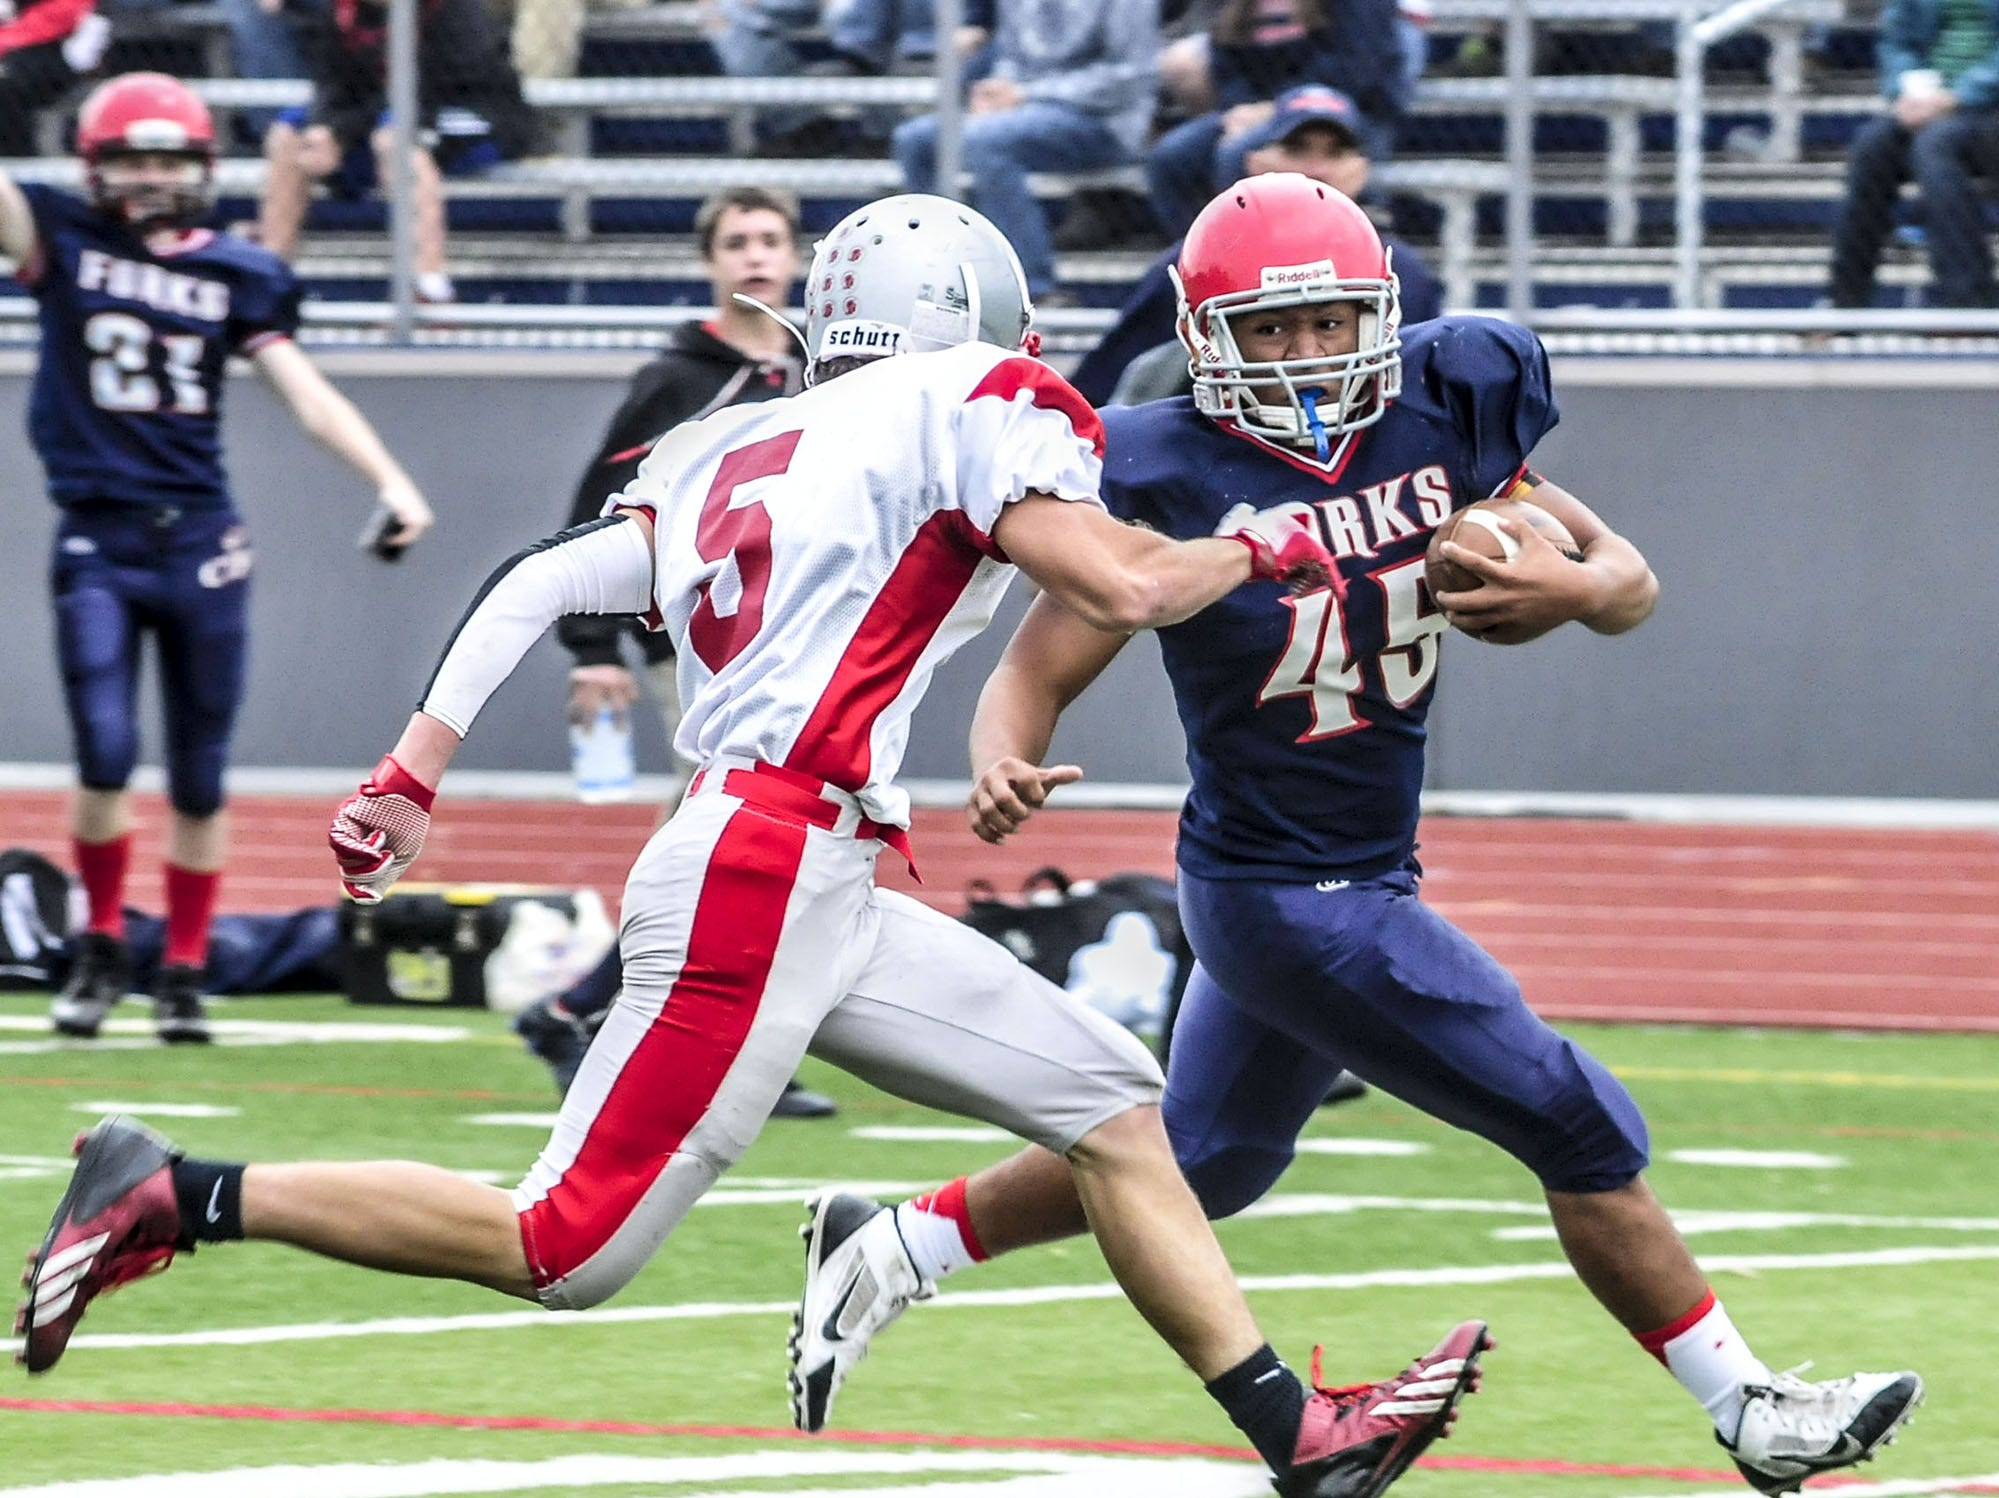 From 2013: Chenango Forks' Isaiah Zimmer had a key run that was not for a touchdown but led to Forks' big push Saturday against rival Chenango Valley.